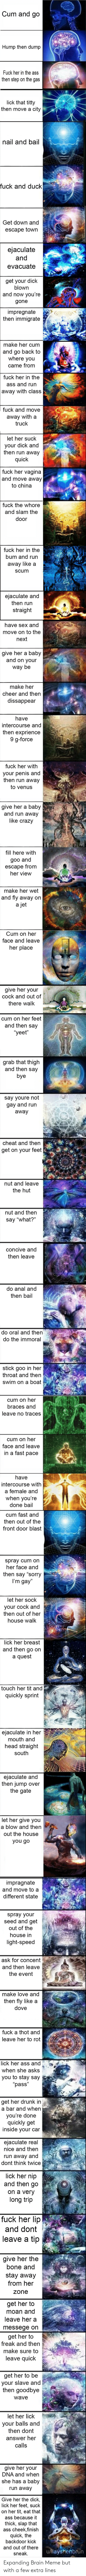 Expanding Brain: Expanding Brain Meme but with a few extra lines